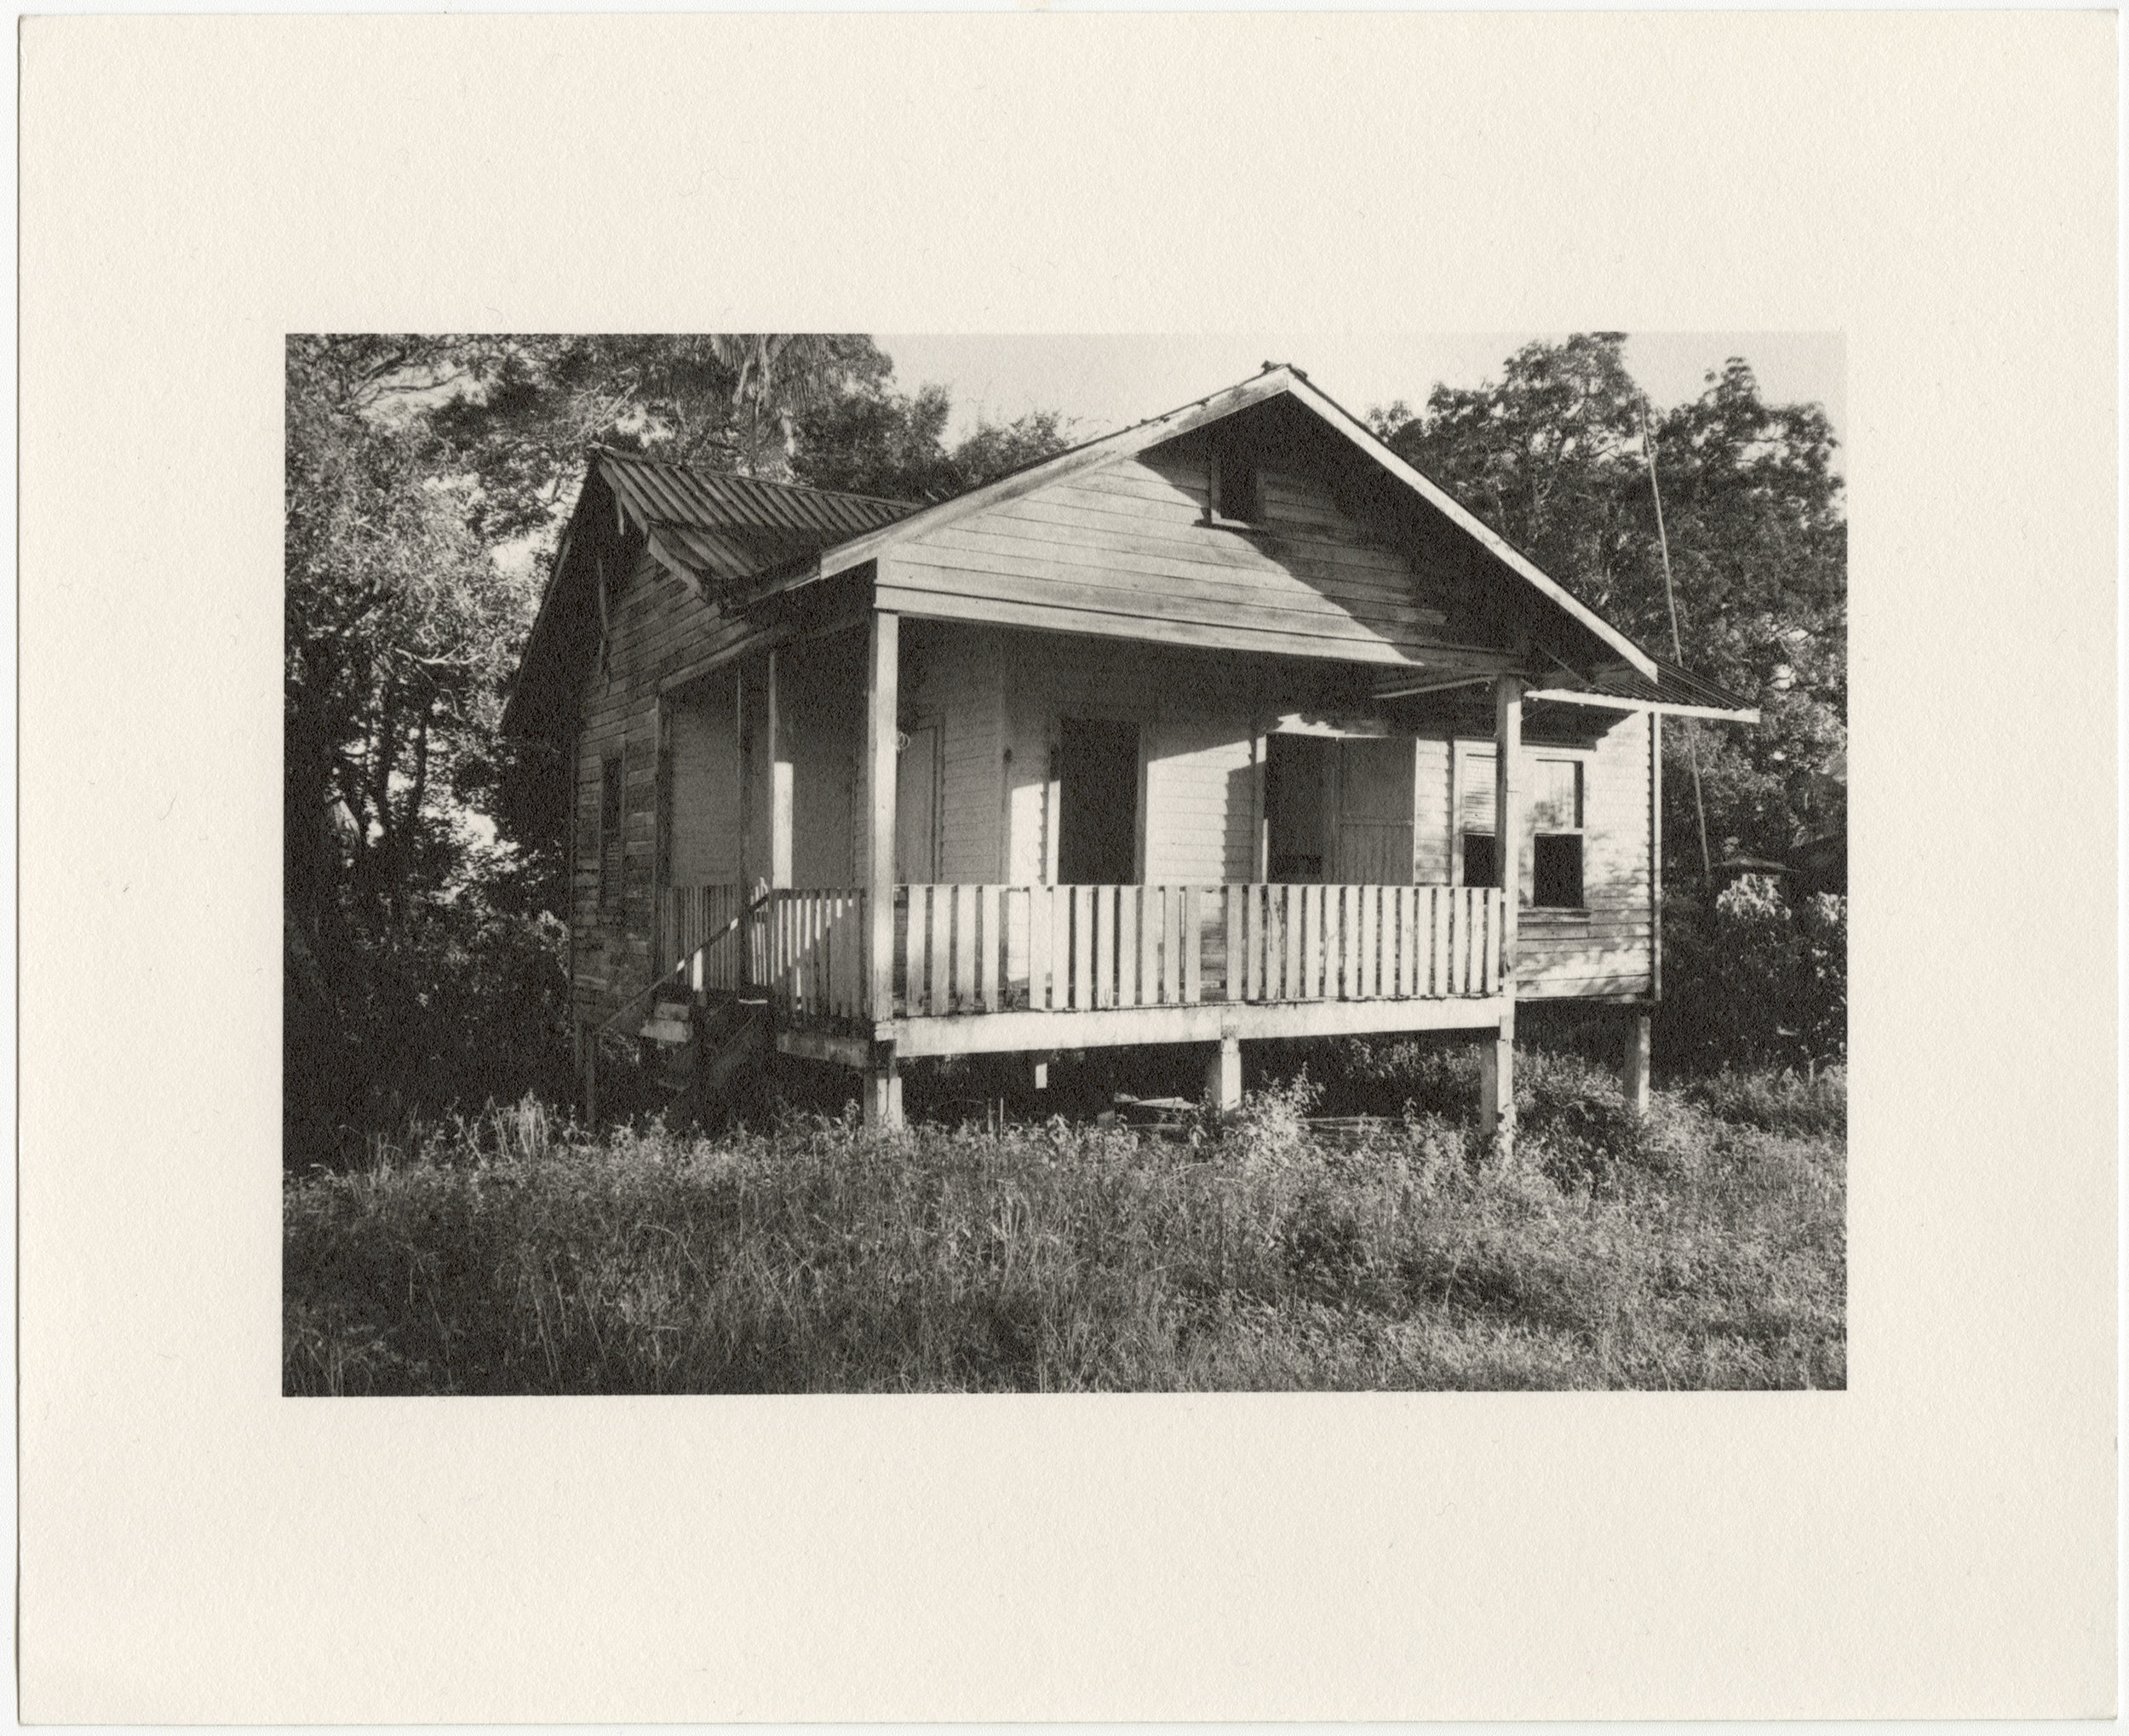 "Fordlândia employee house with elevated front porch, built in 1929-1933 by the Companhia Ford Industrial Do Brasil Ford Motor Company. 2014 Fordlândia, Pará, Brazil. Gelatin silver fiber print, 8"" x 10"", 2014/2018"